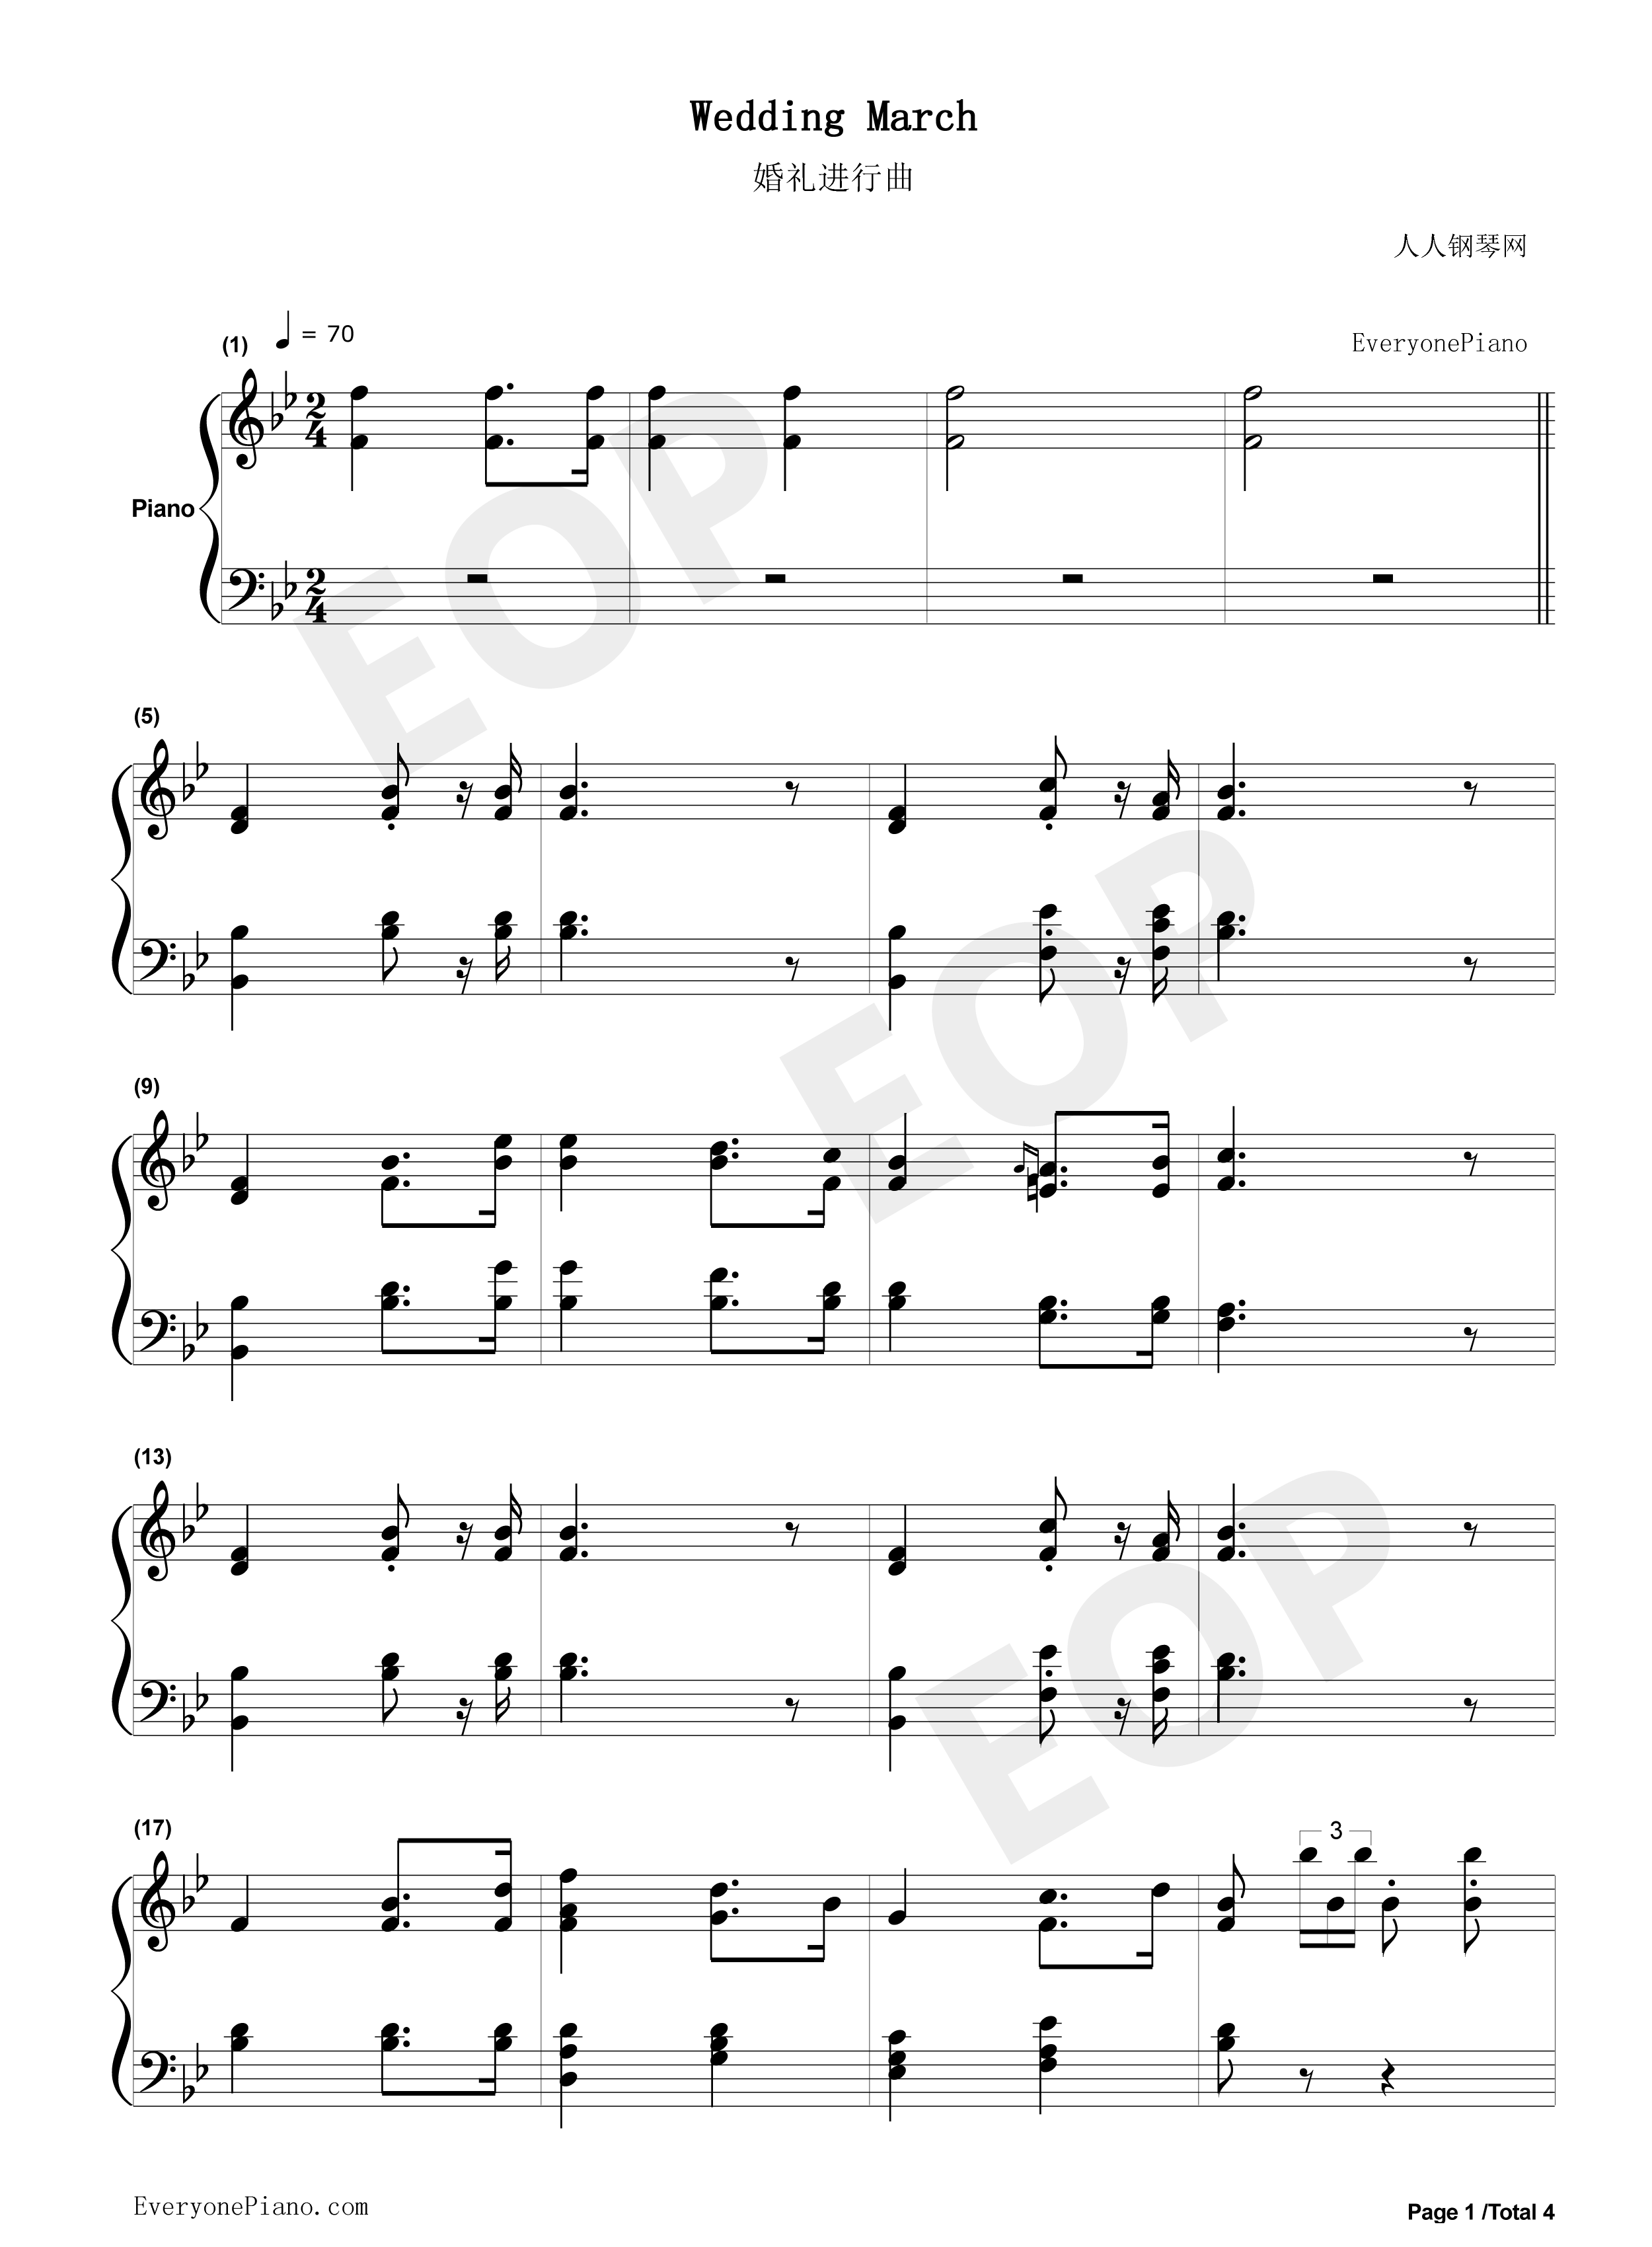 Wedding march richard wagner stave preview 1 free piano sheet listen now print sheet wedding march richard wagner stave preview 1 hexwebz Image collections